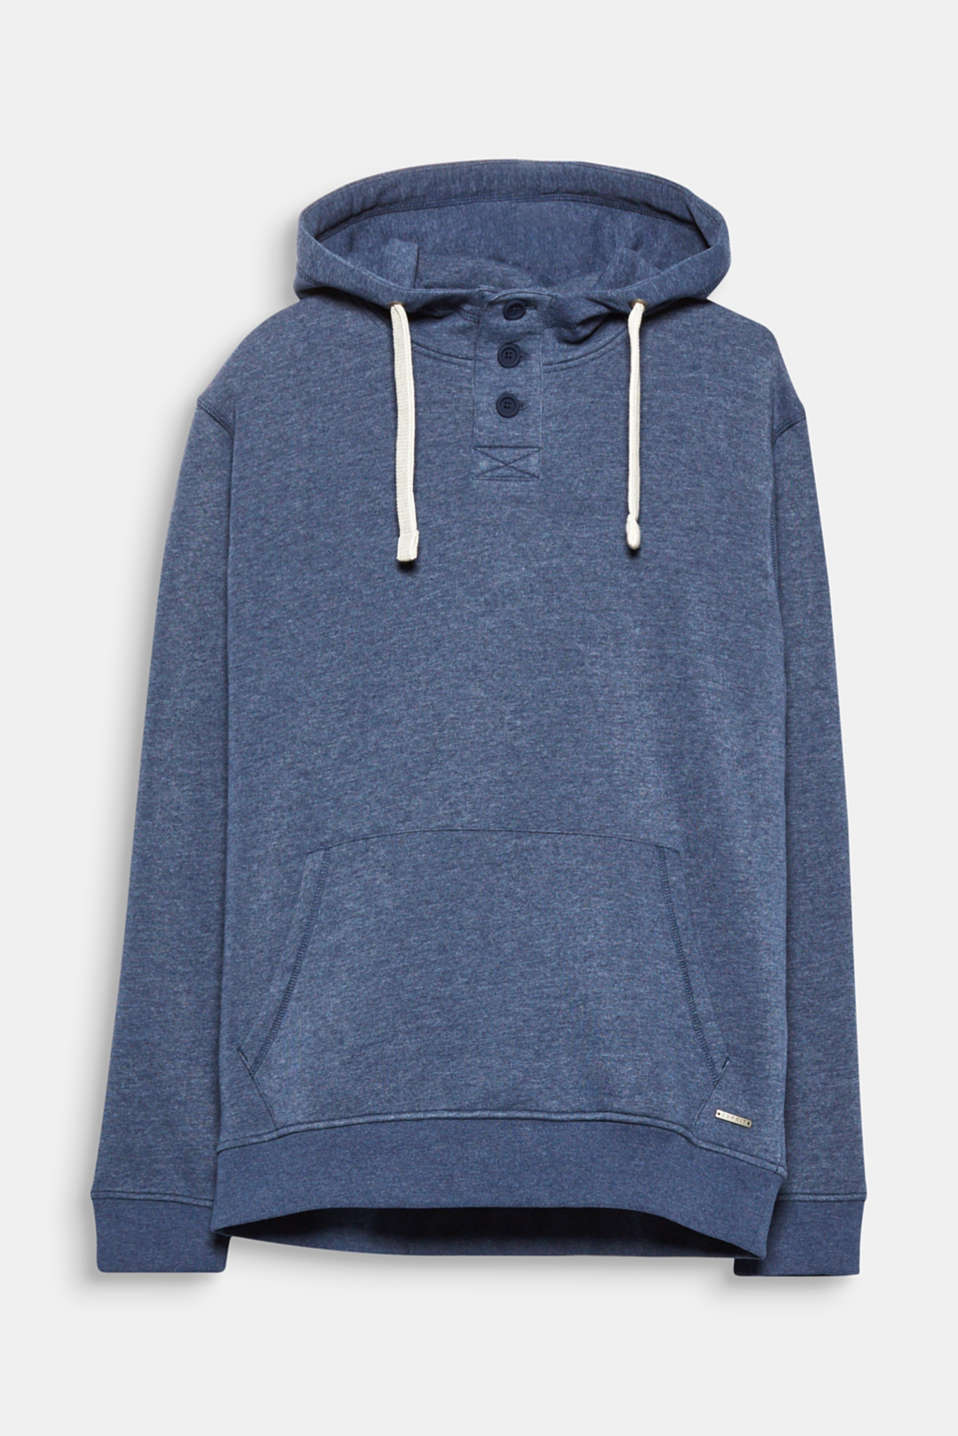 With soft sweatshirt fabric and a warm fleece interior, this hoodie will be a cosy favourite this season.